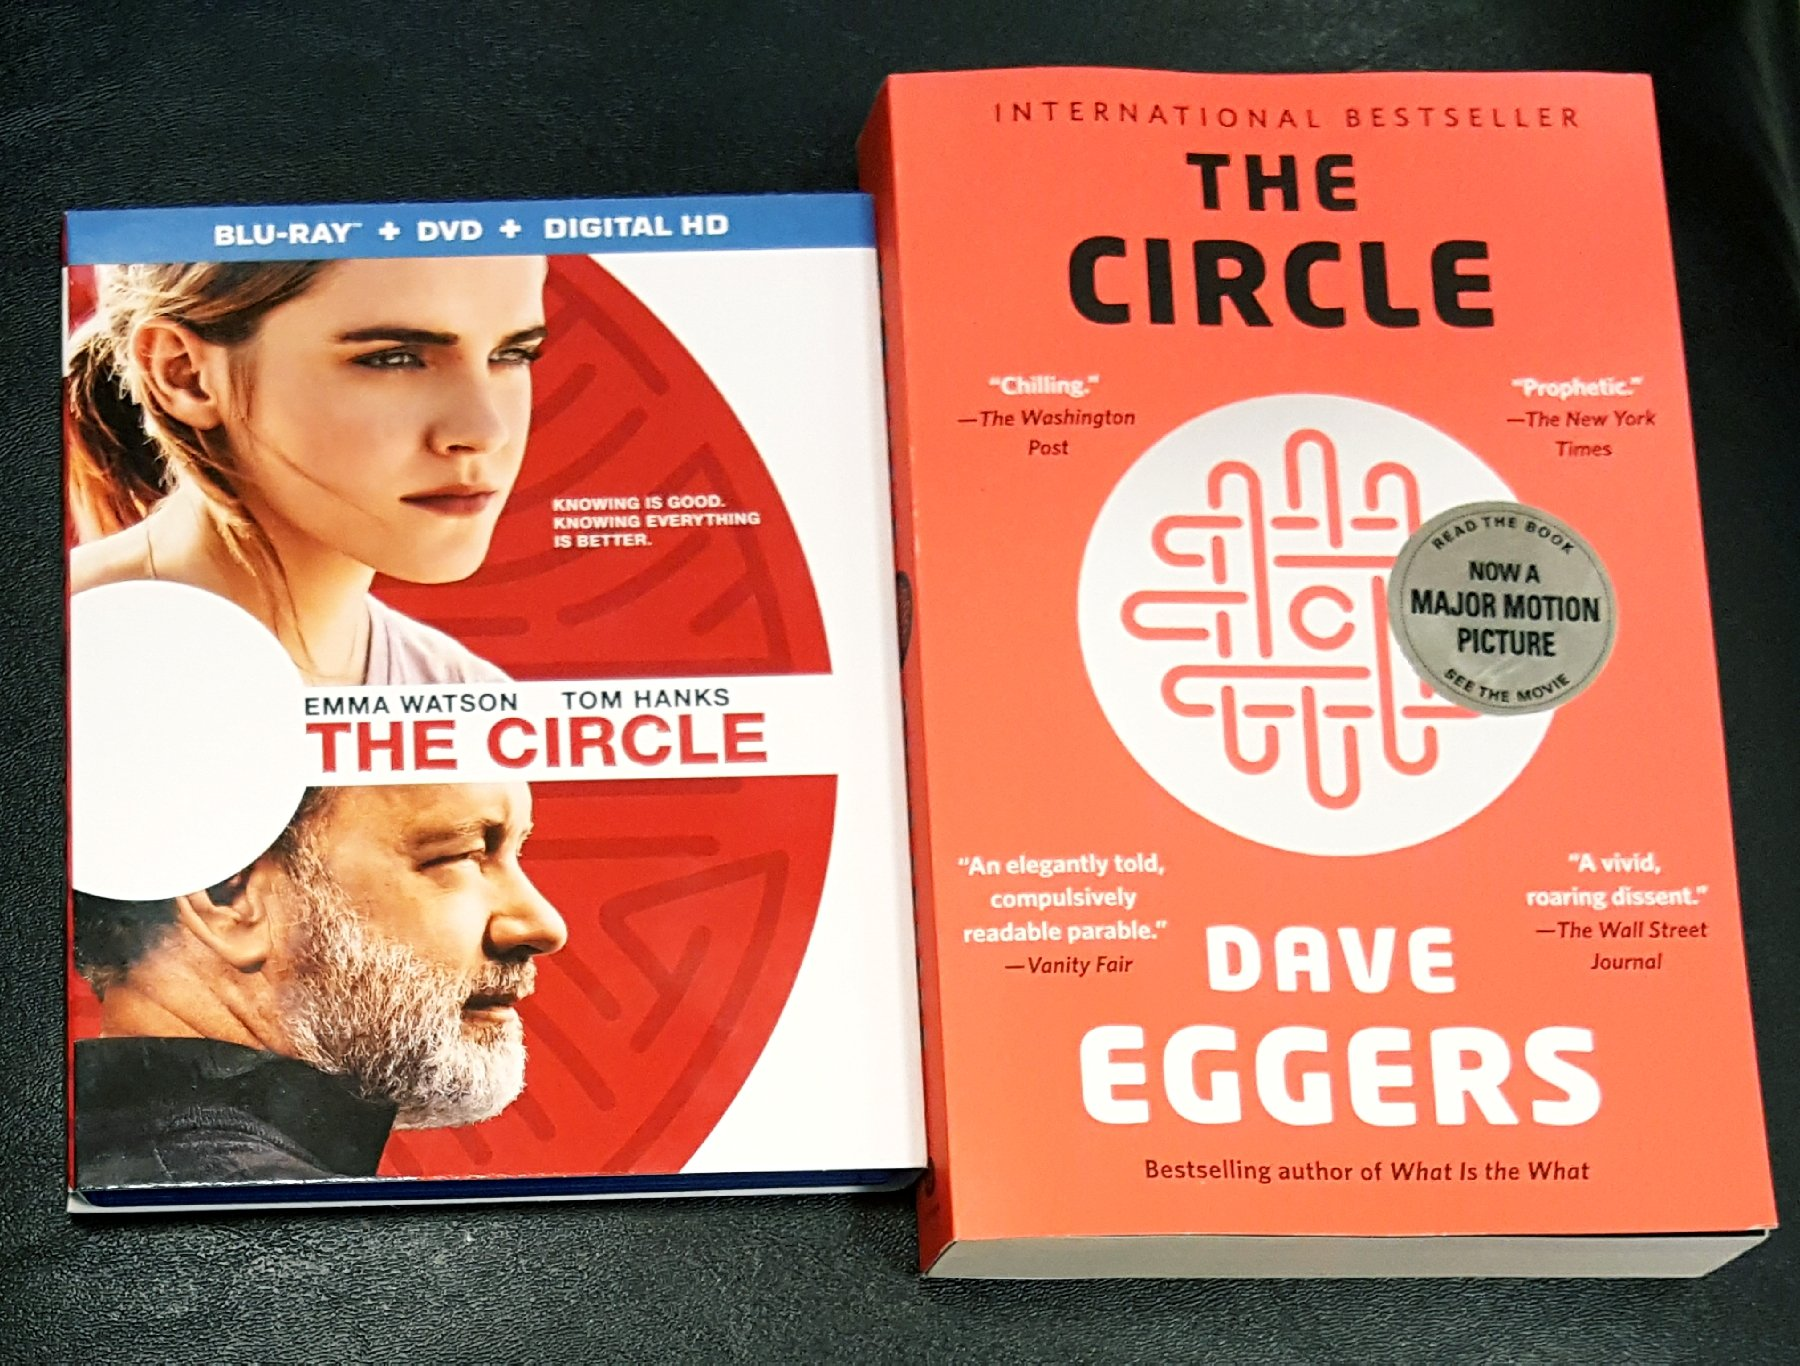 BWW Review: THE CIRCLE By Dave Eggers: Which Is Better, The Book Or The Movie?